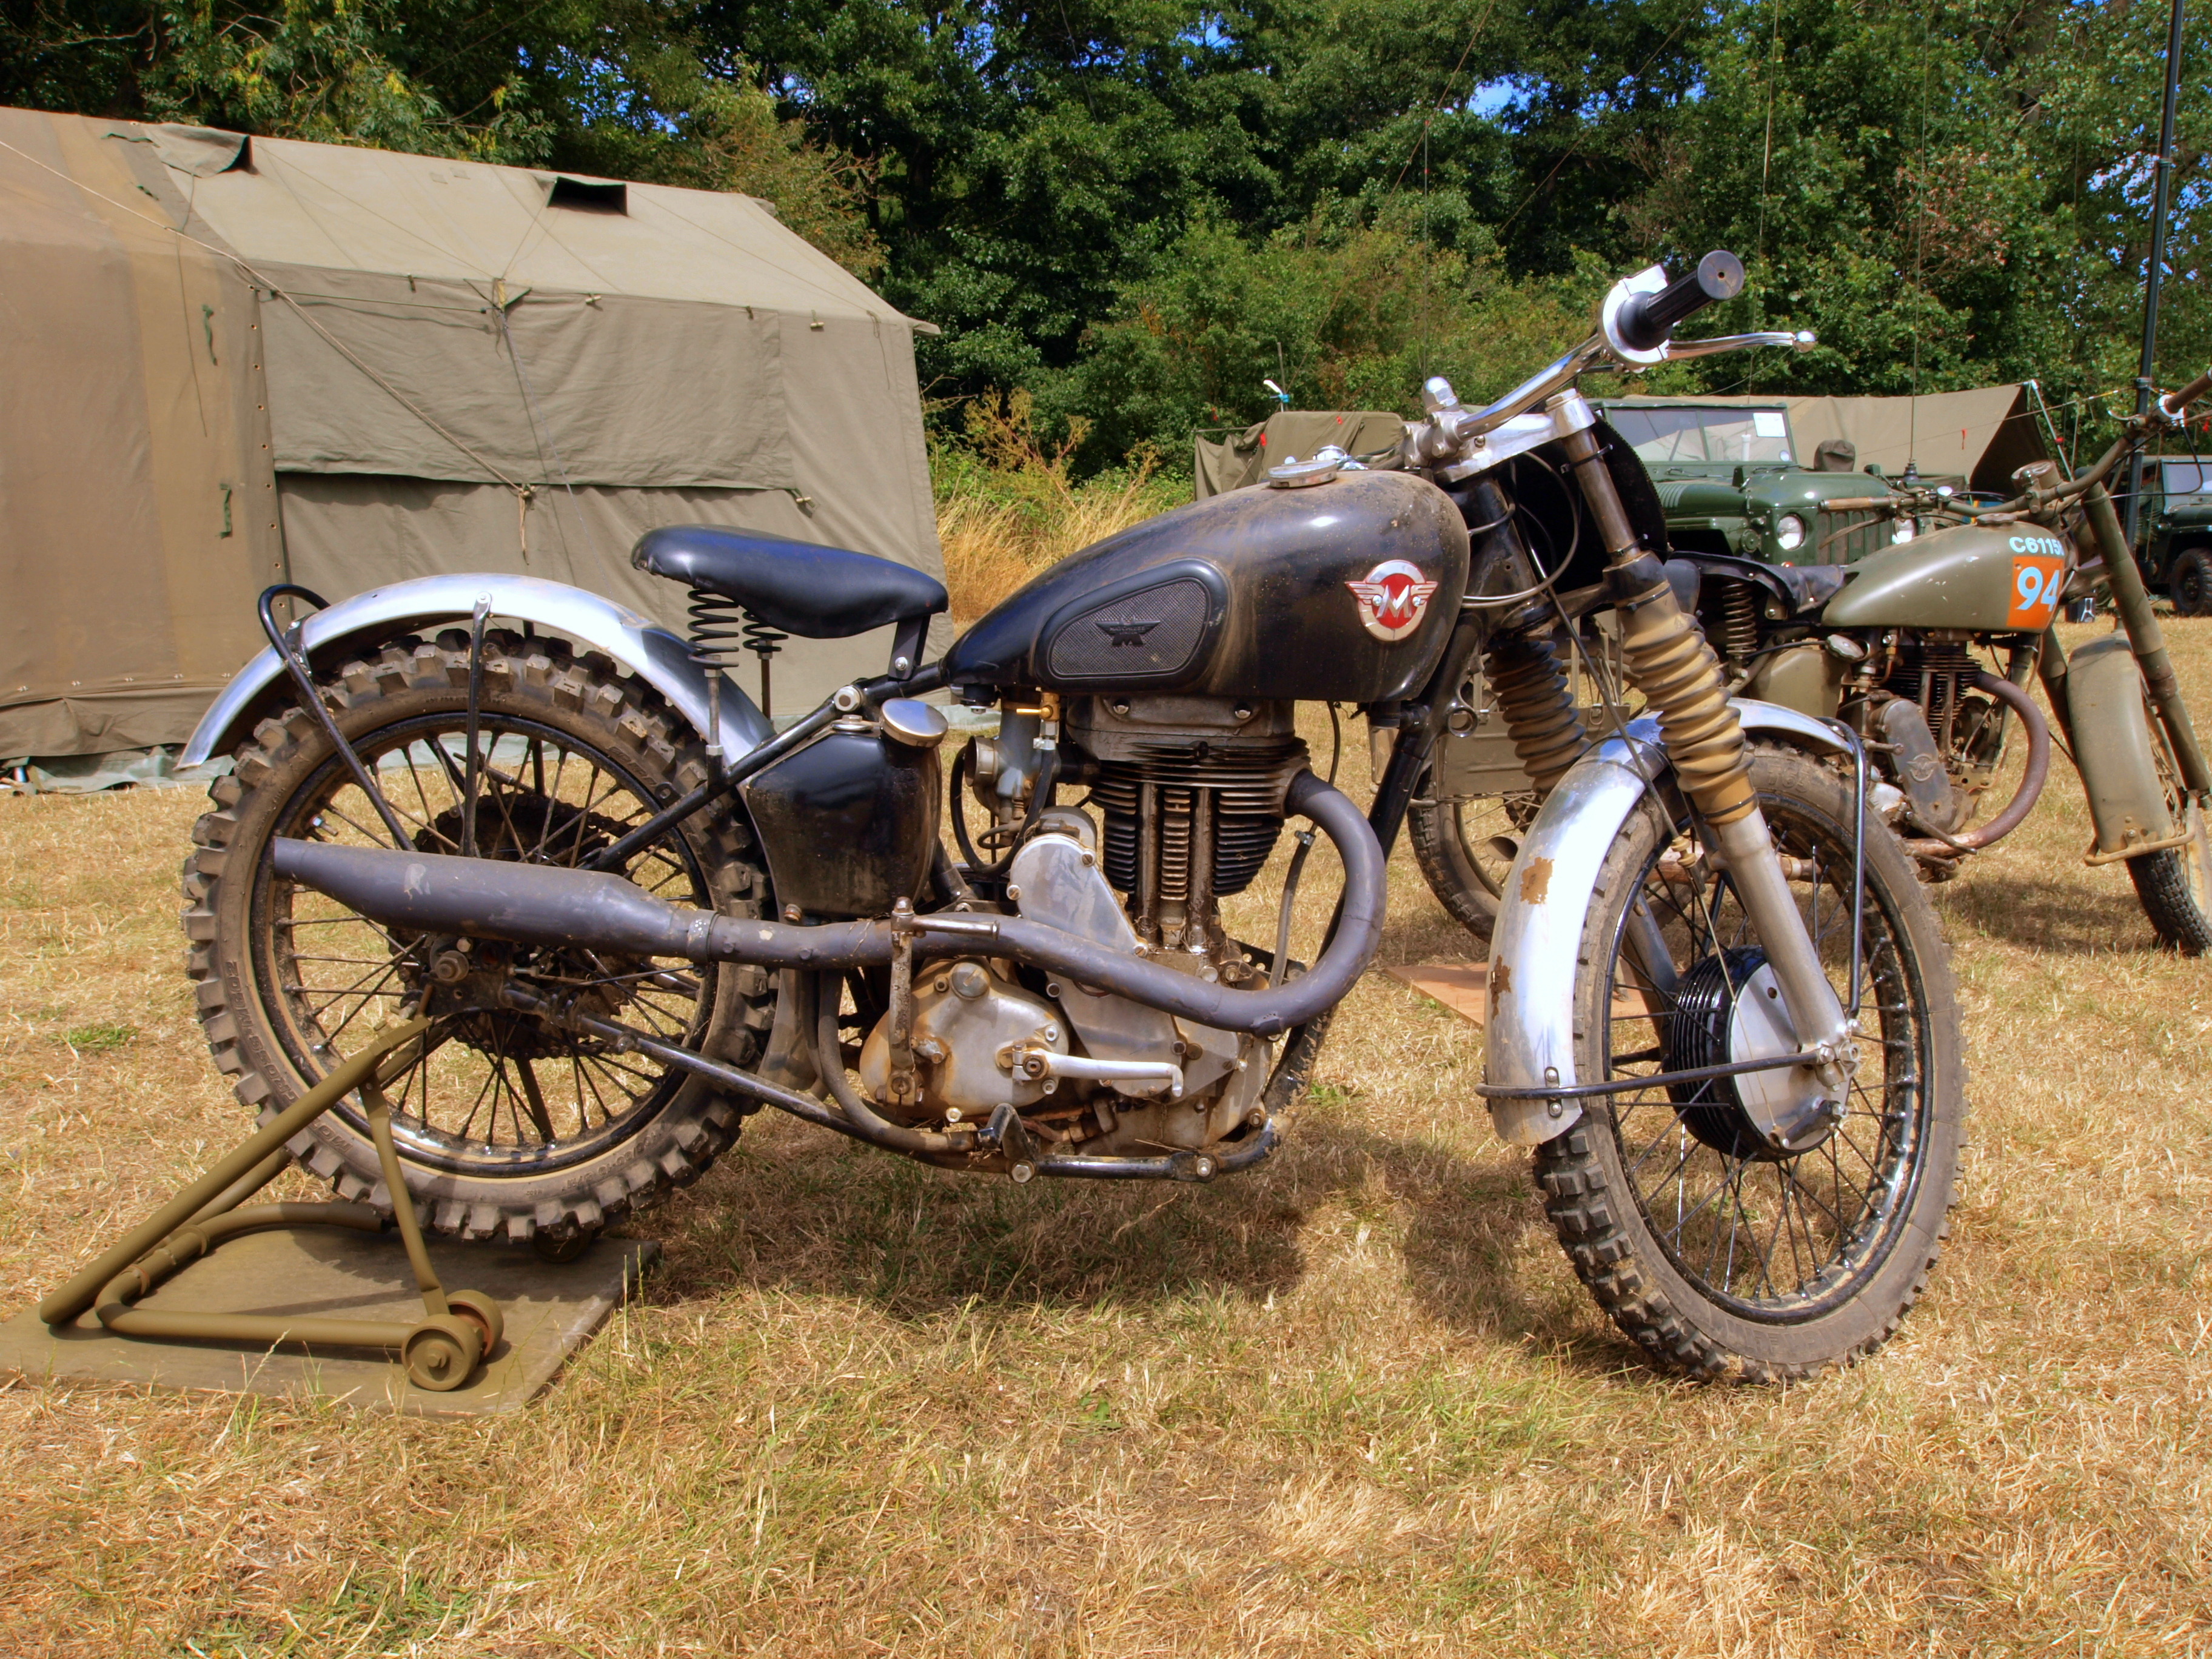 File:Old Matchless motorcycle.JPG - Wikimedia Commons